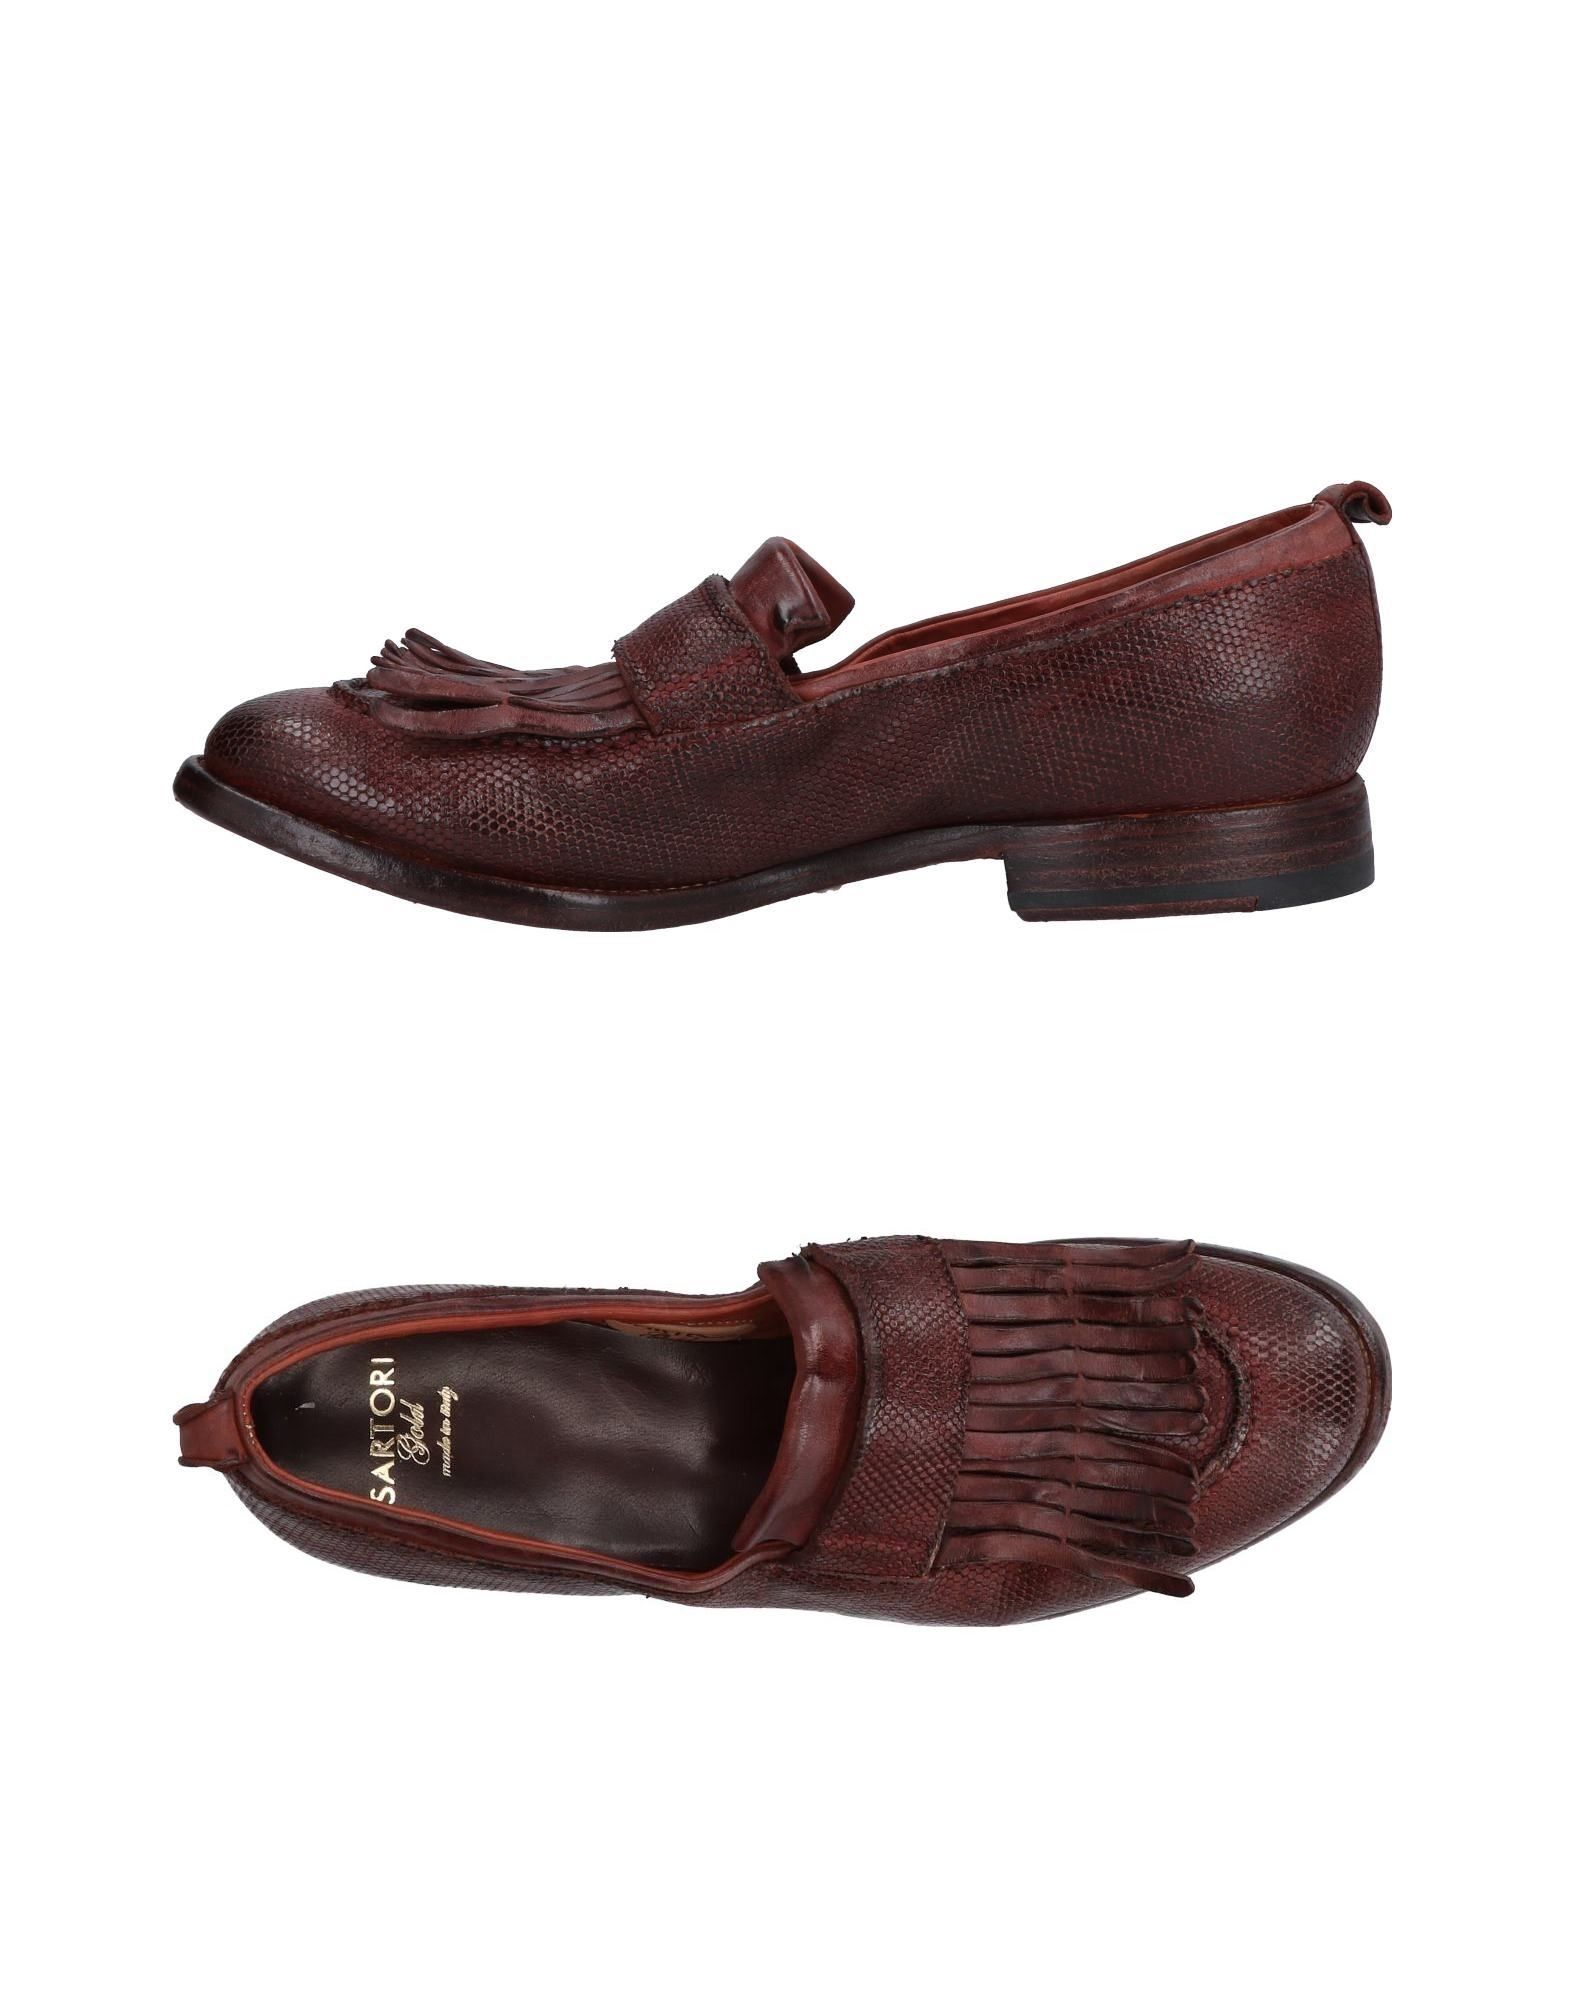 Sartori Gold Loafers - Women Sartori Gold Loafers - online on  Australia - Loafers 11485373WR 341567